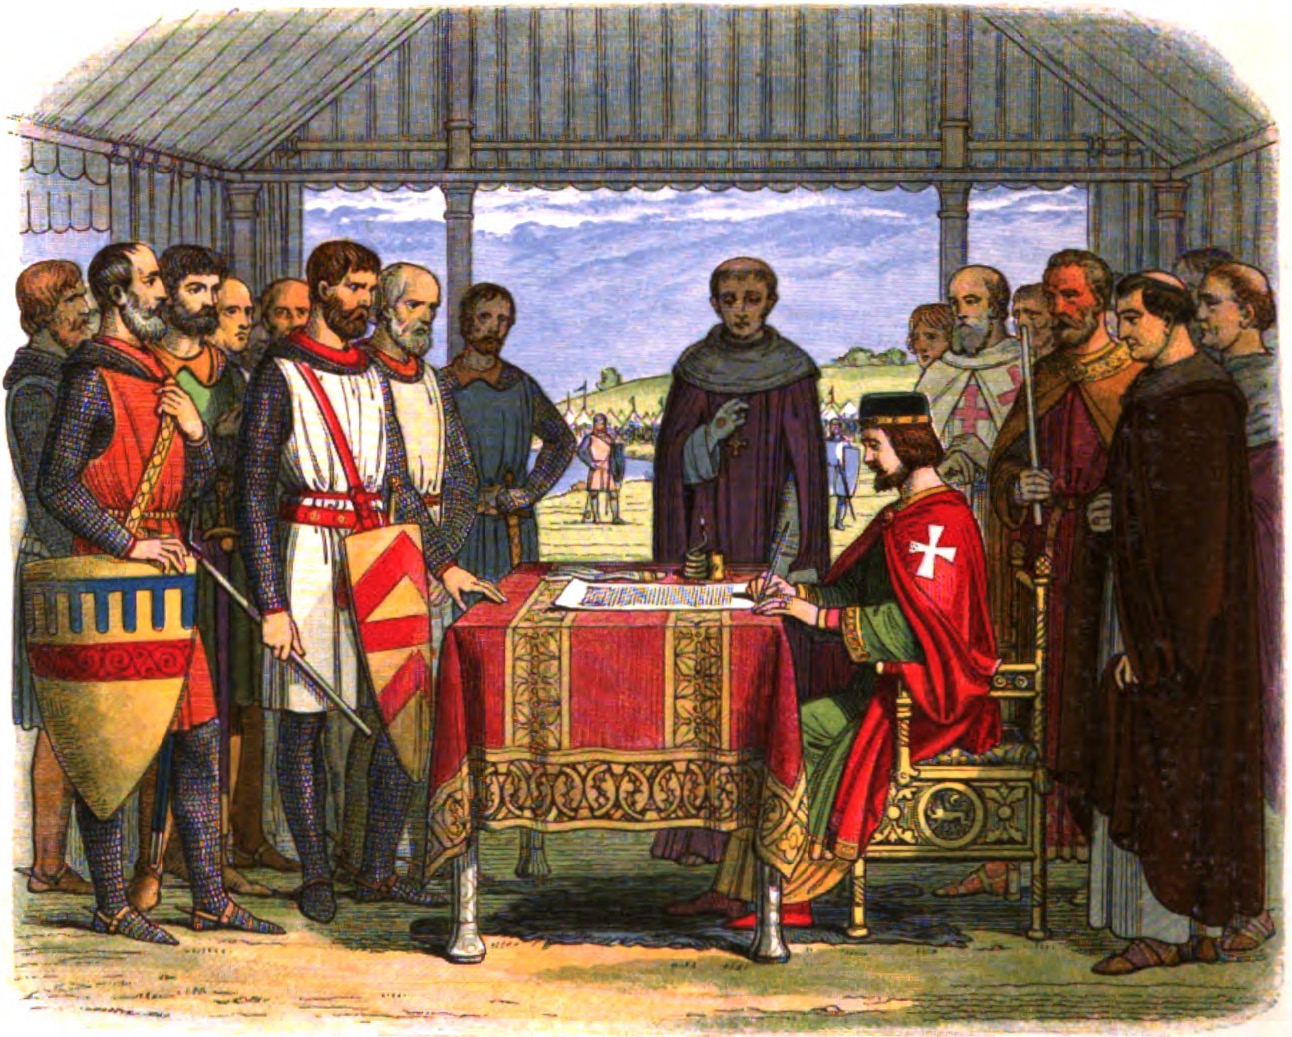 Romantacized drawing of barons and lords having King John sign the Magna Carta